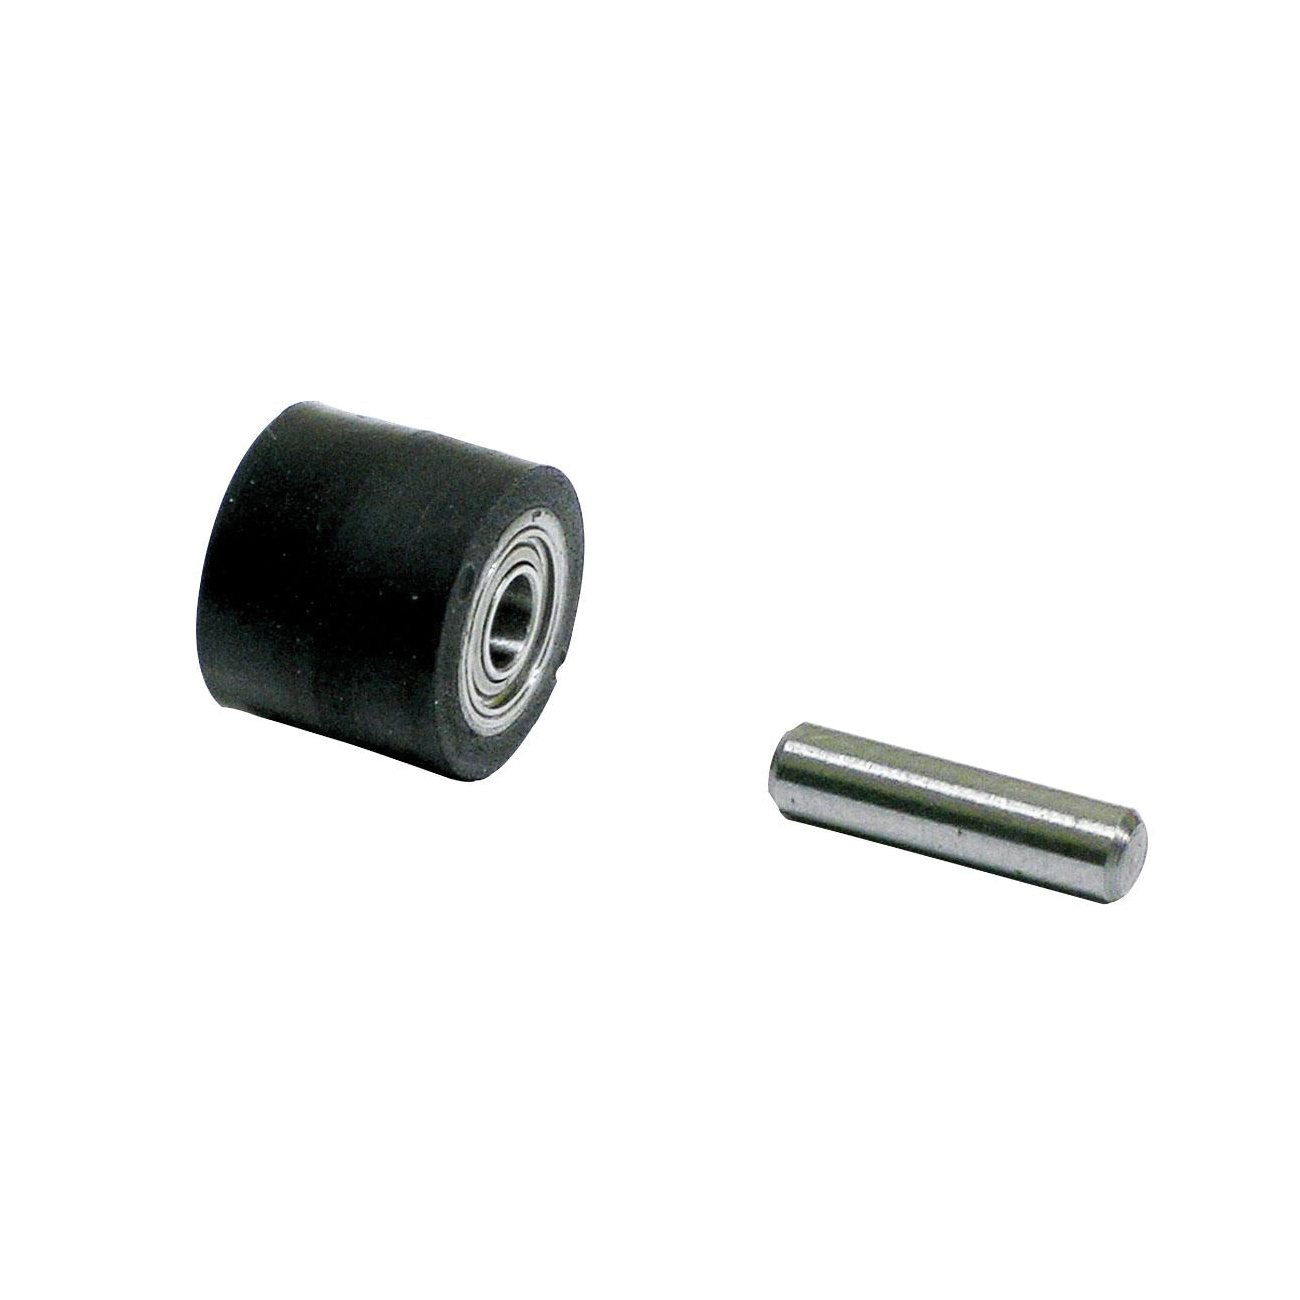 Dynabrade® 11040 Spring, For Use With Mini-Dynafile®II 15003 Abrasive Belt Tool